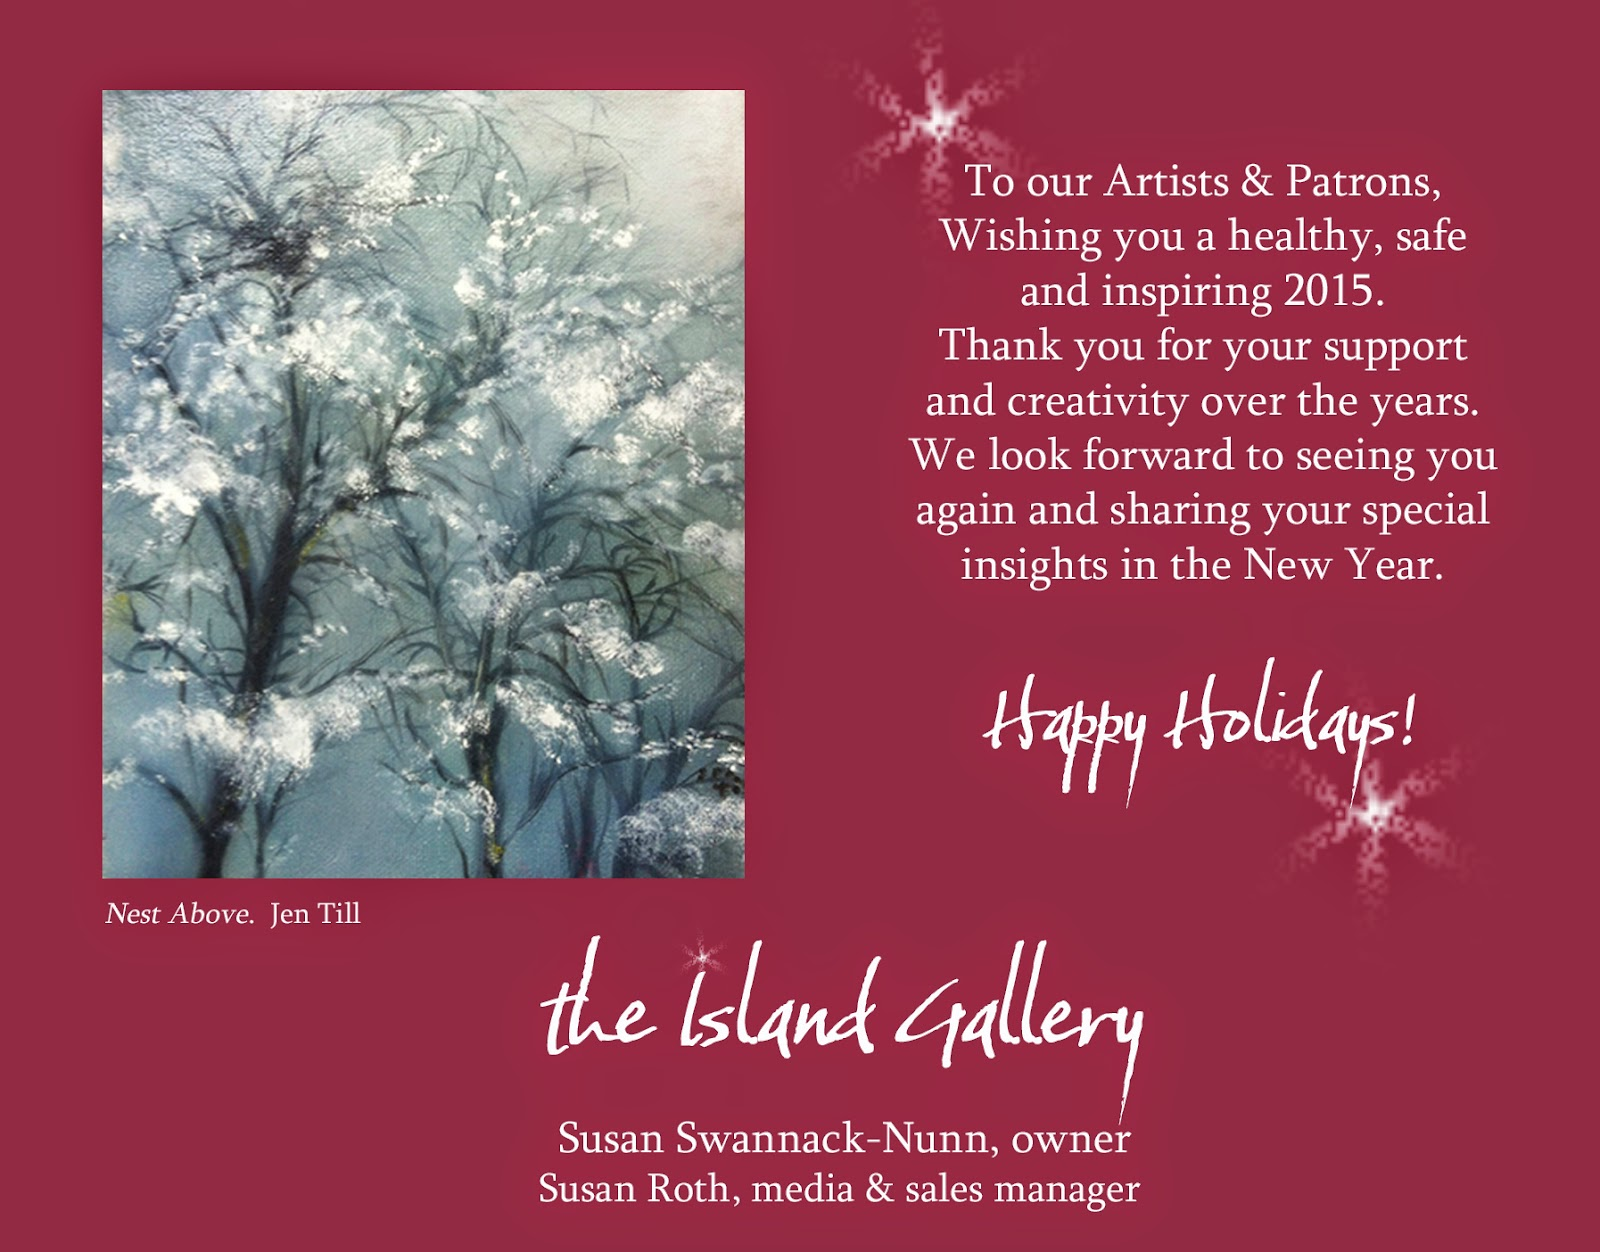 The Island Gallery Art Blog Holiday Greetings 2014